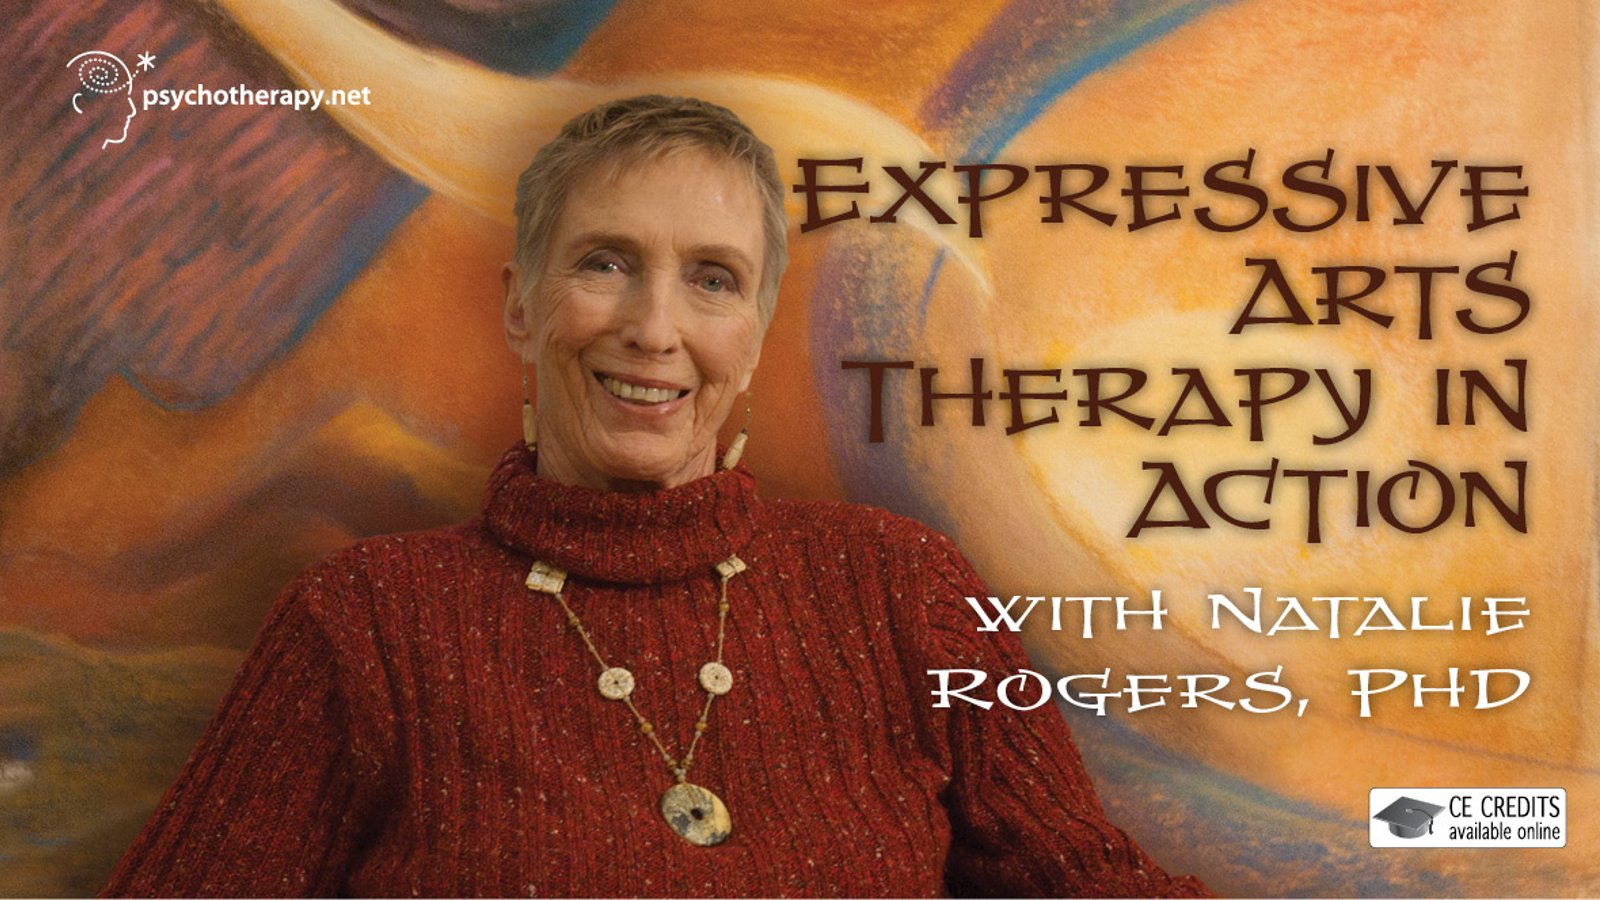 Expressive Arts Therapy in Action - With Natalie Rogers